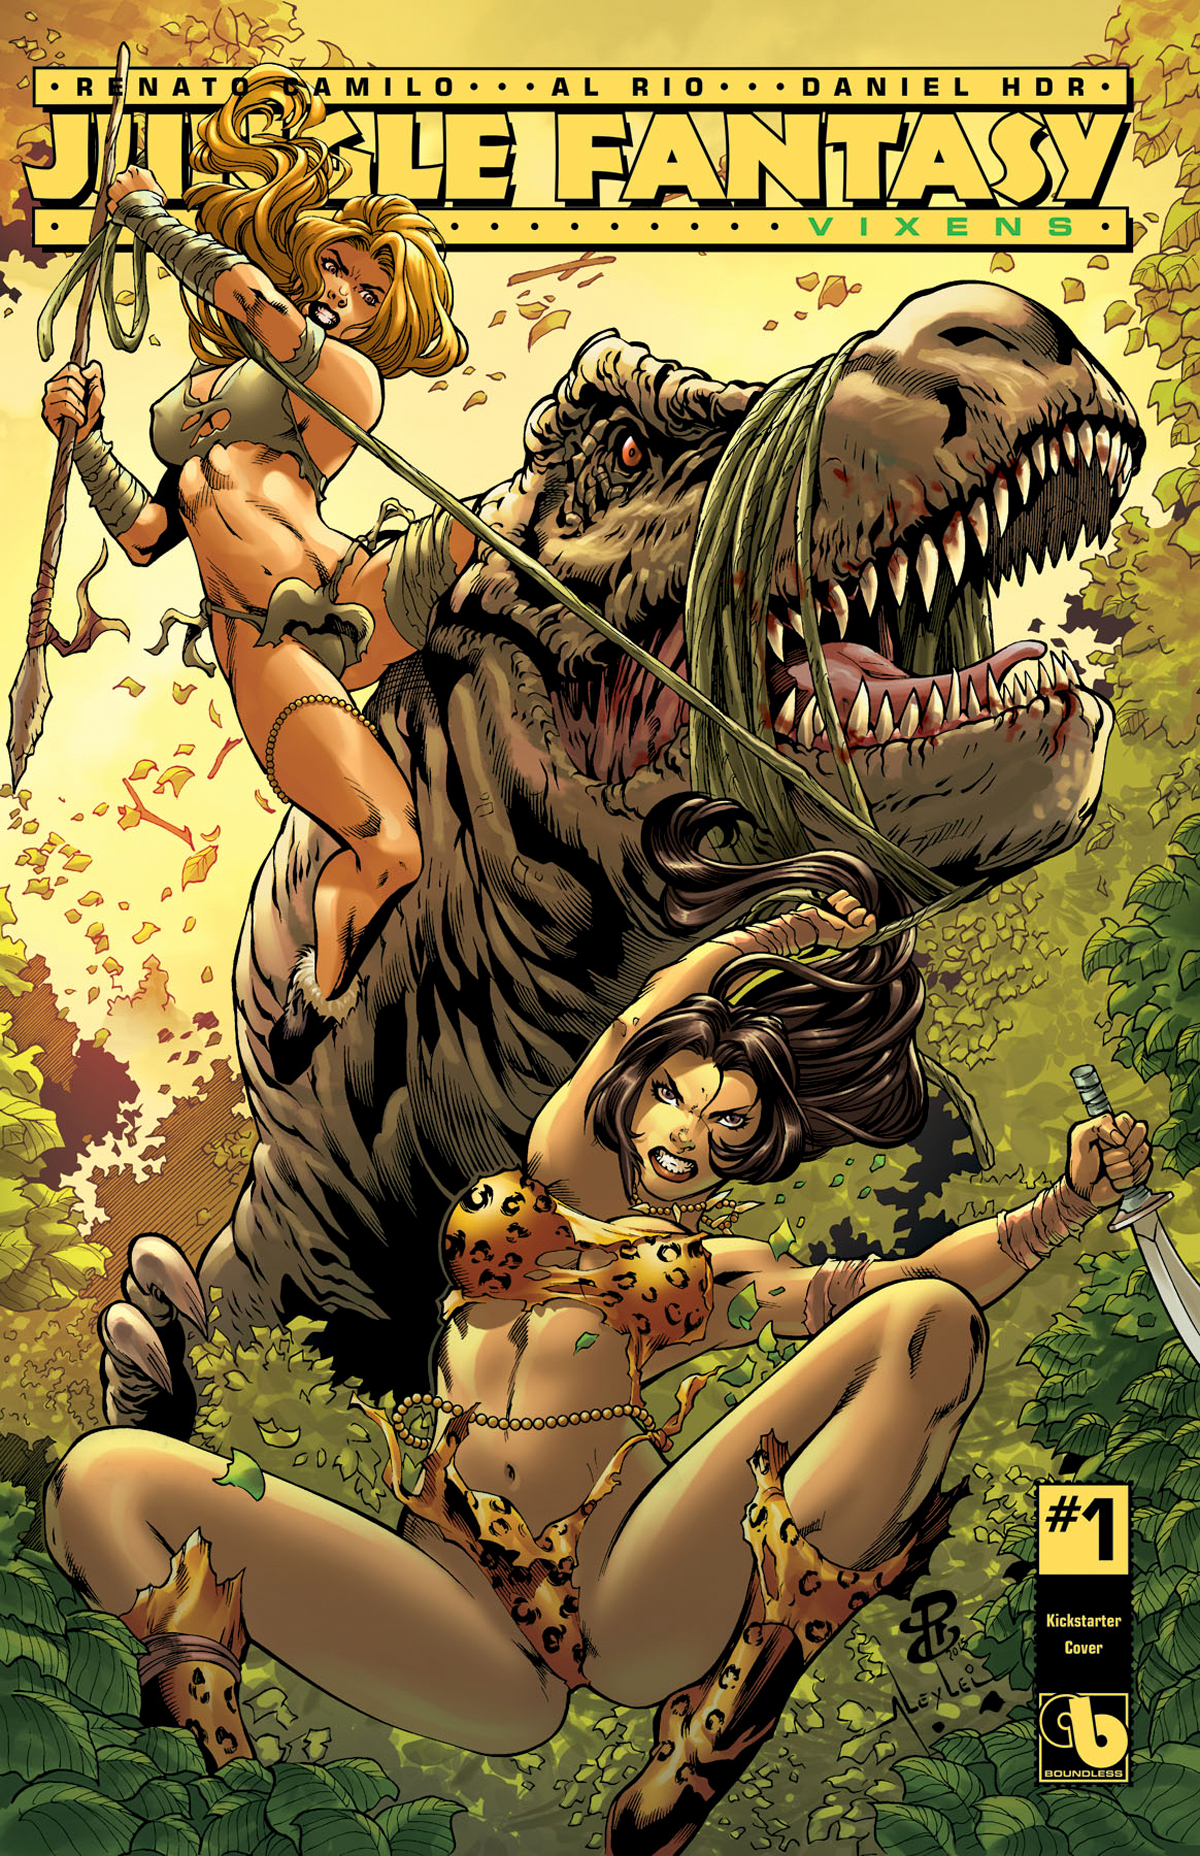 JUNGLE FANTASY VIXENS #1 (OF 2) KICKSTARTER CVR (MR)